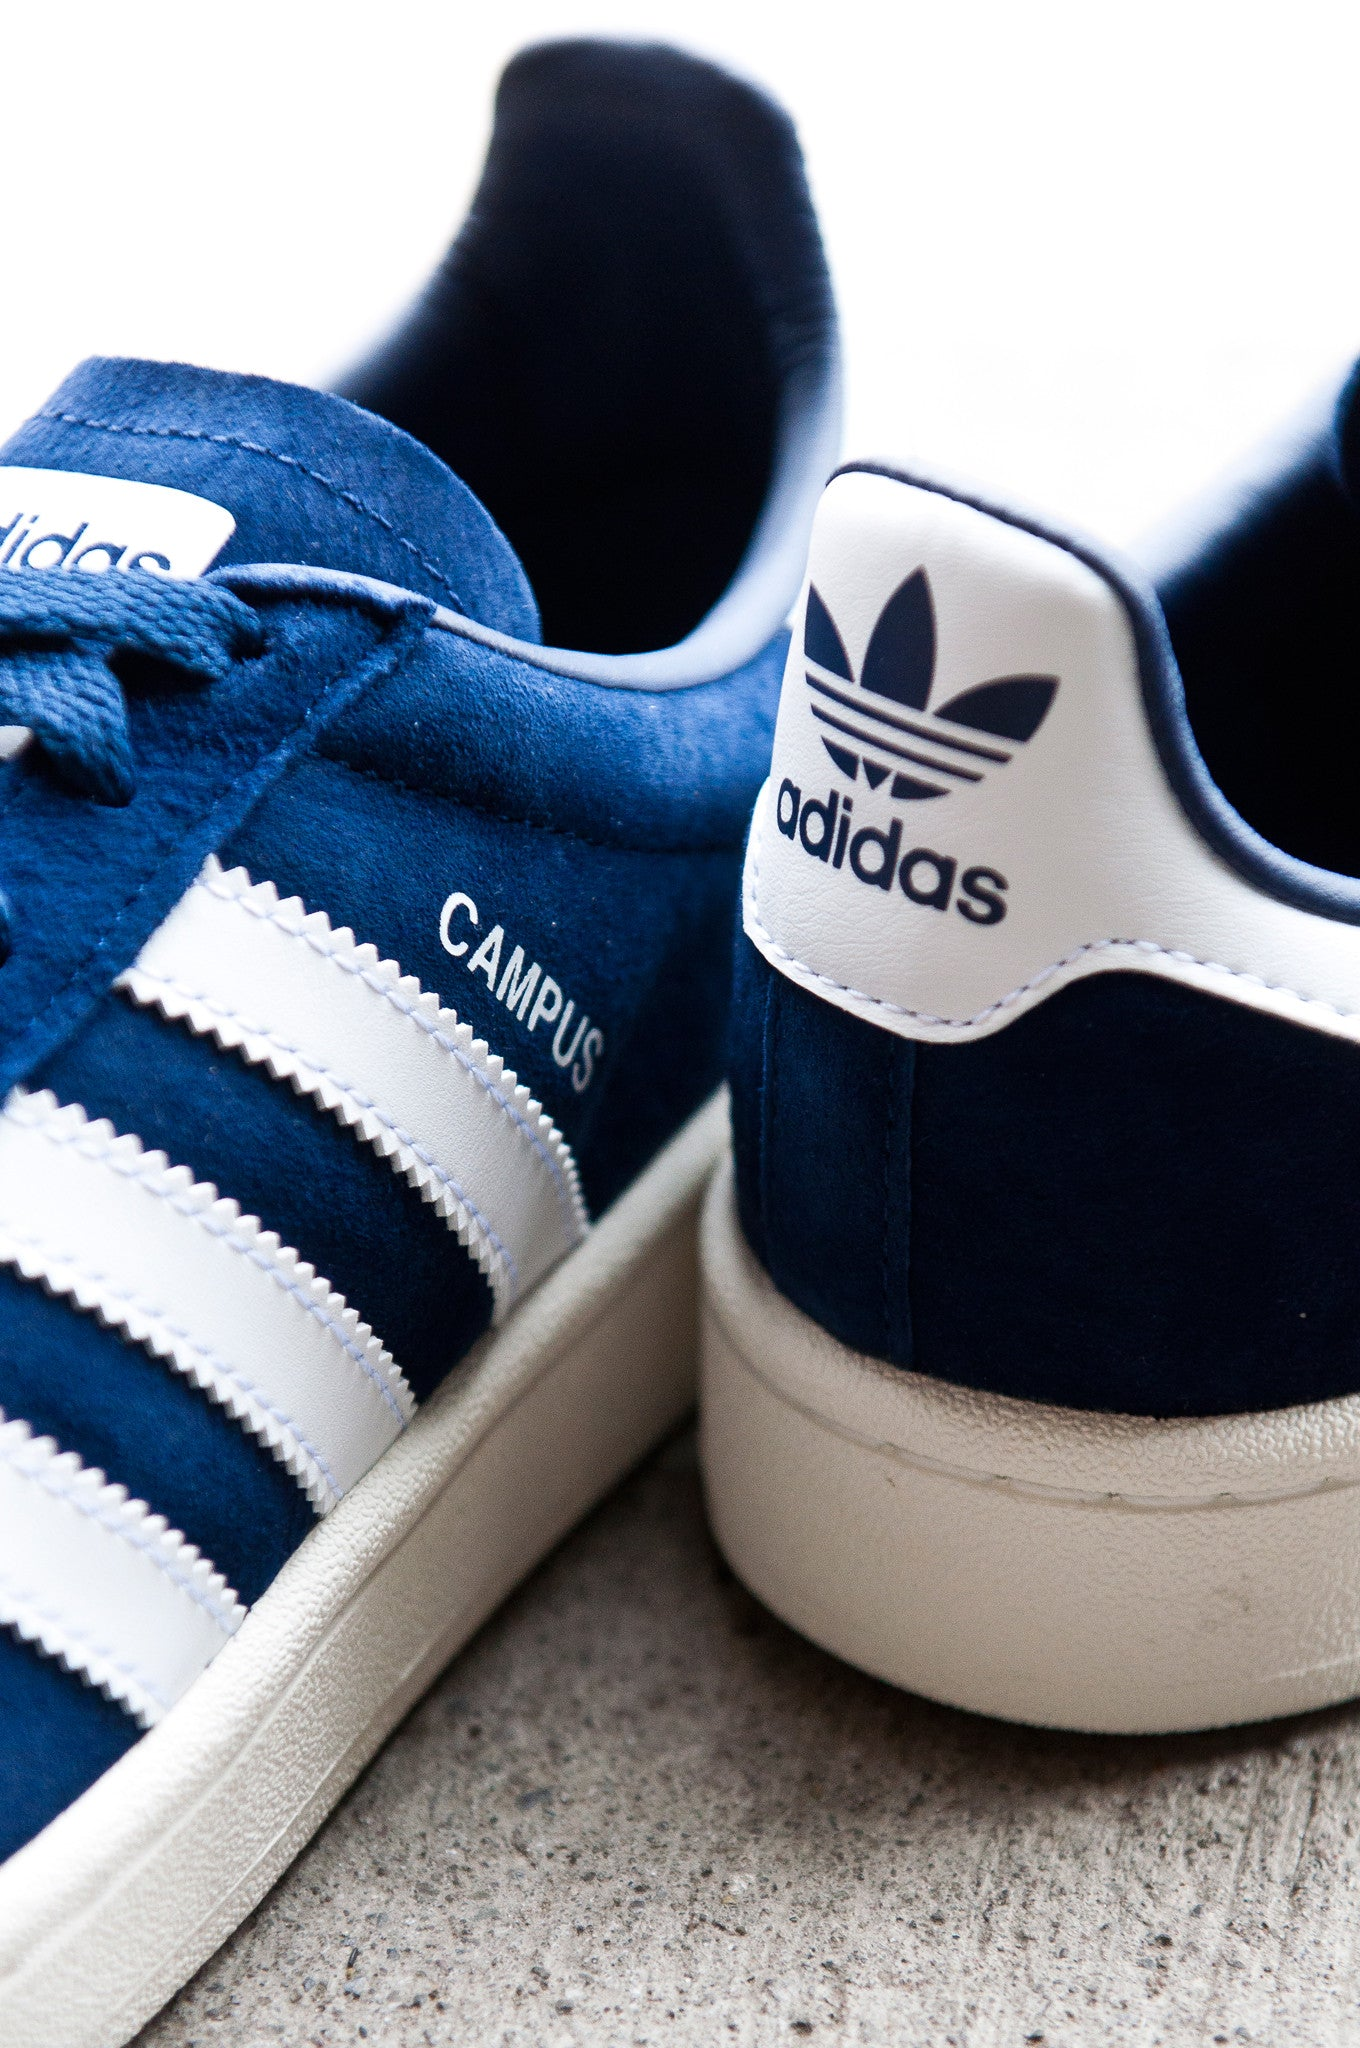 Adidas Campus Classic DK Blue White Navy BZ0086 at shoplostfound 4